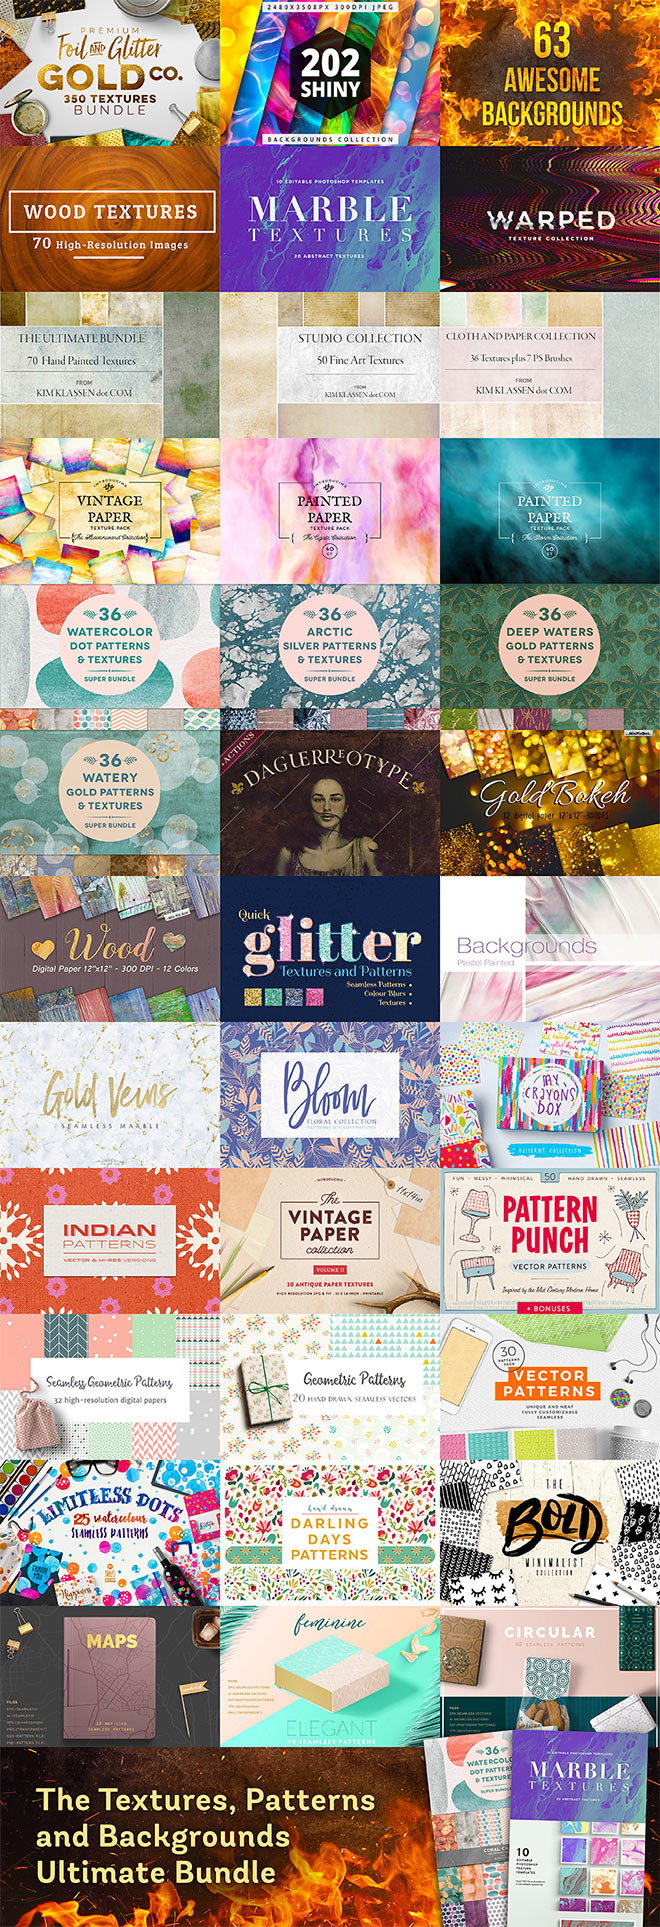 99% off! The Ultimate Textures, Patterns & Backgrounds Bundle